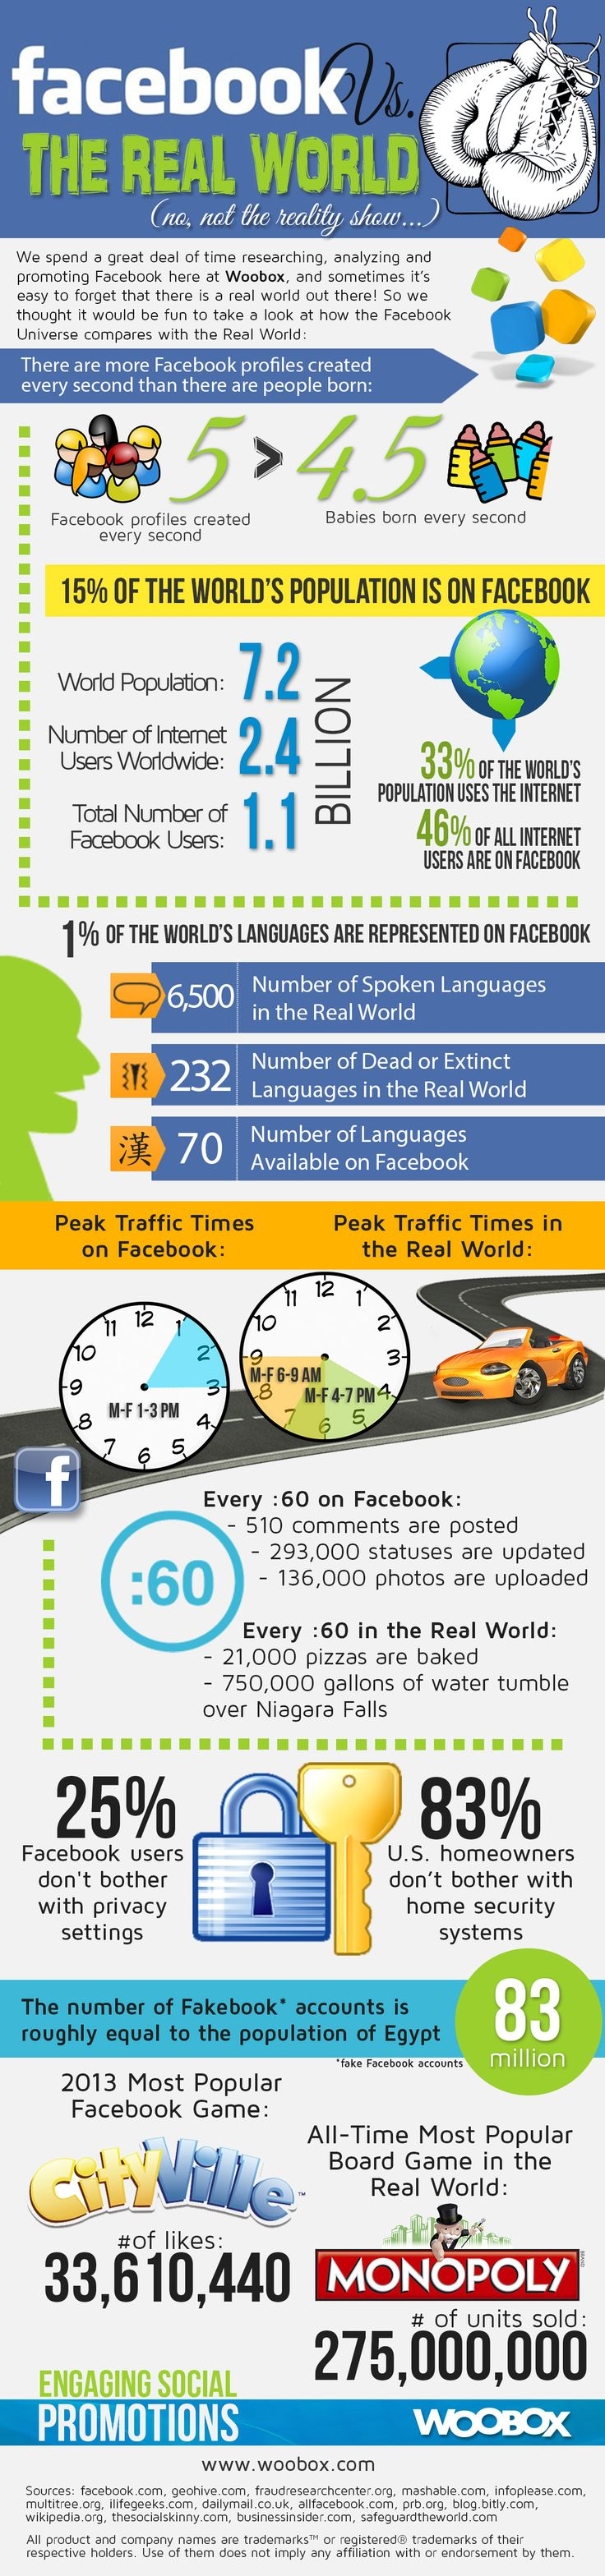 INFOGRAPHIC: Facebook World Vs